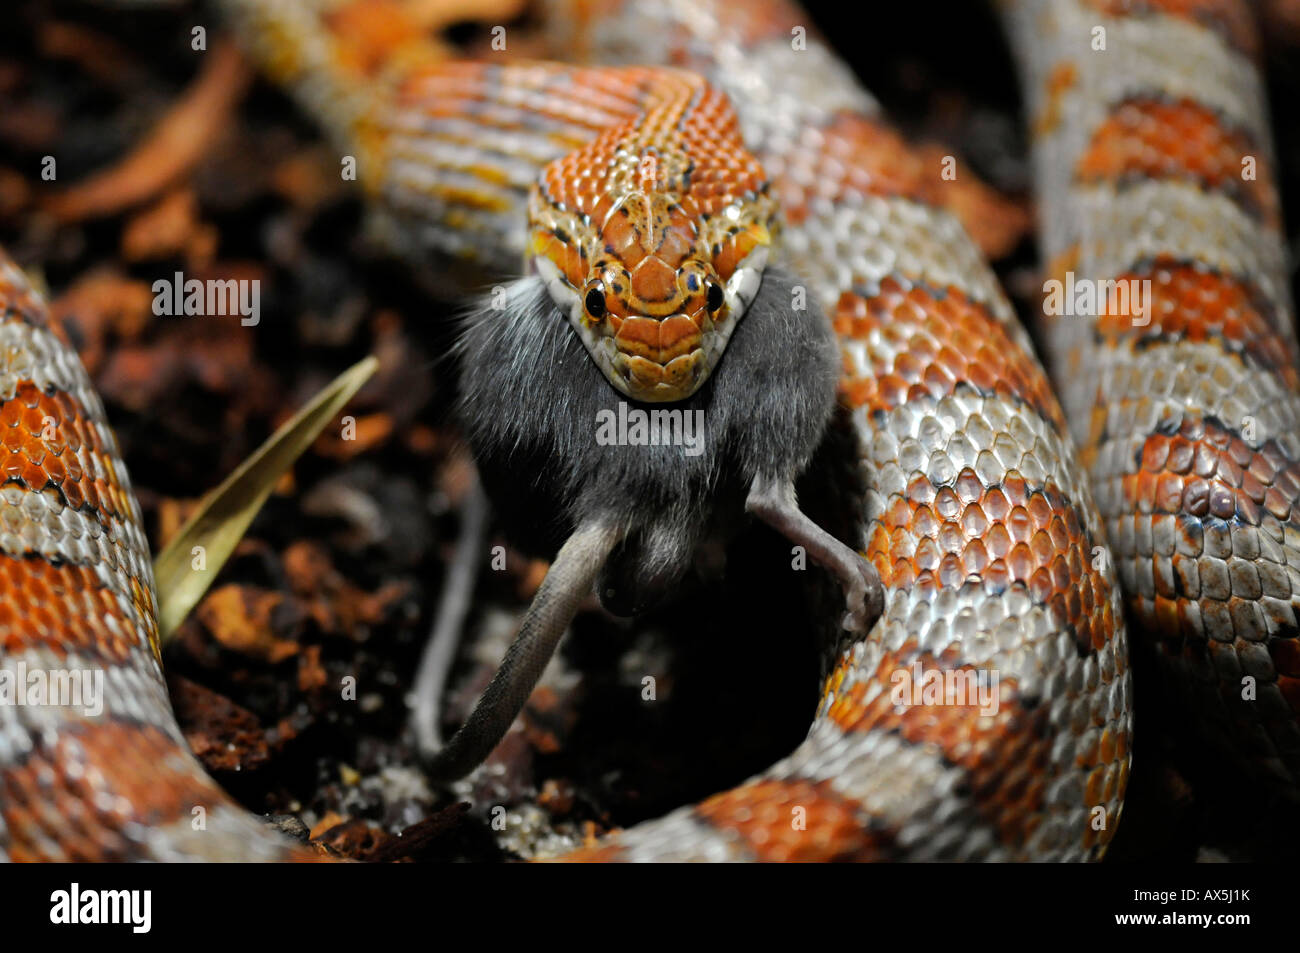 Corn Snake or Red Rat Snake (Pantherophis guttatus) eating a mouse Stock Photo